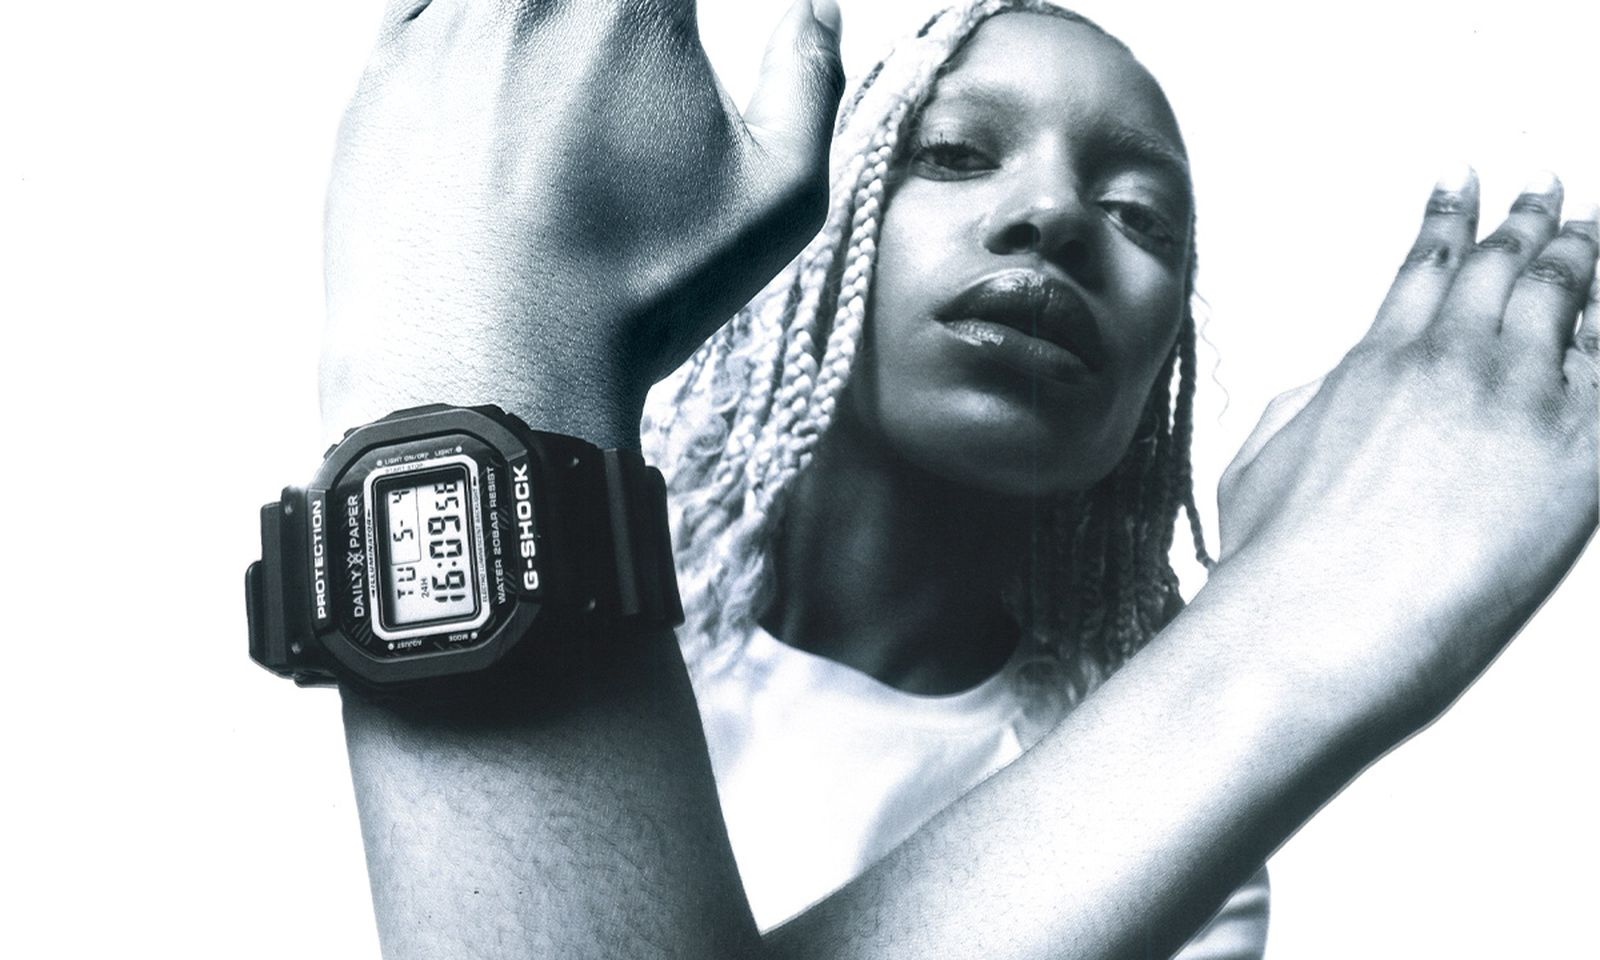 gshock-dailypaper-feature